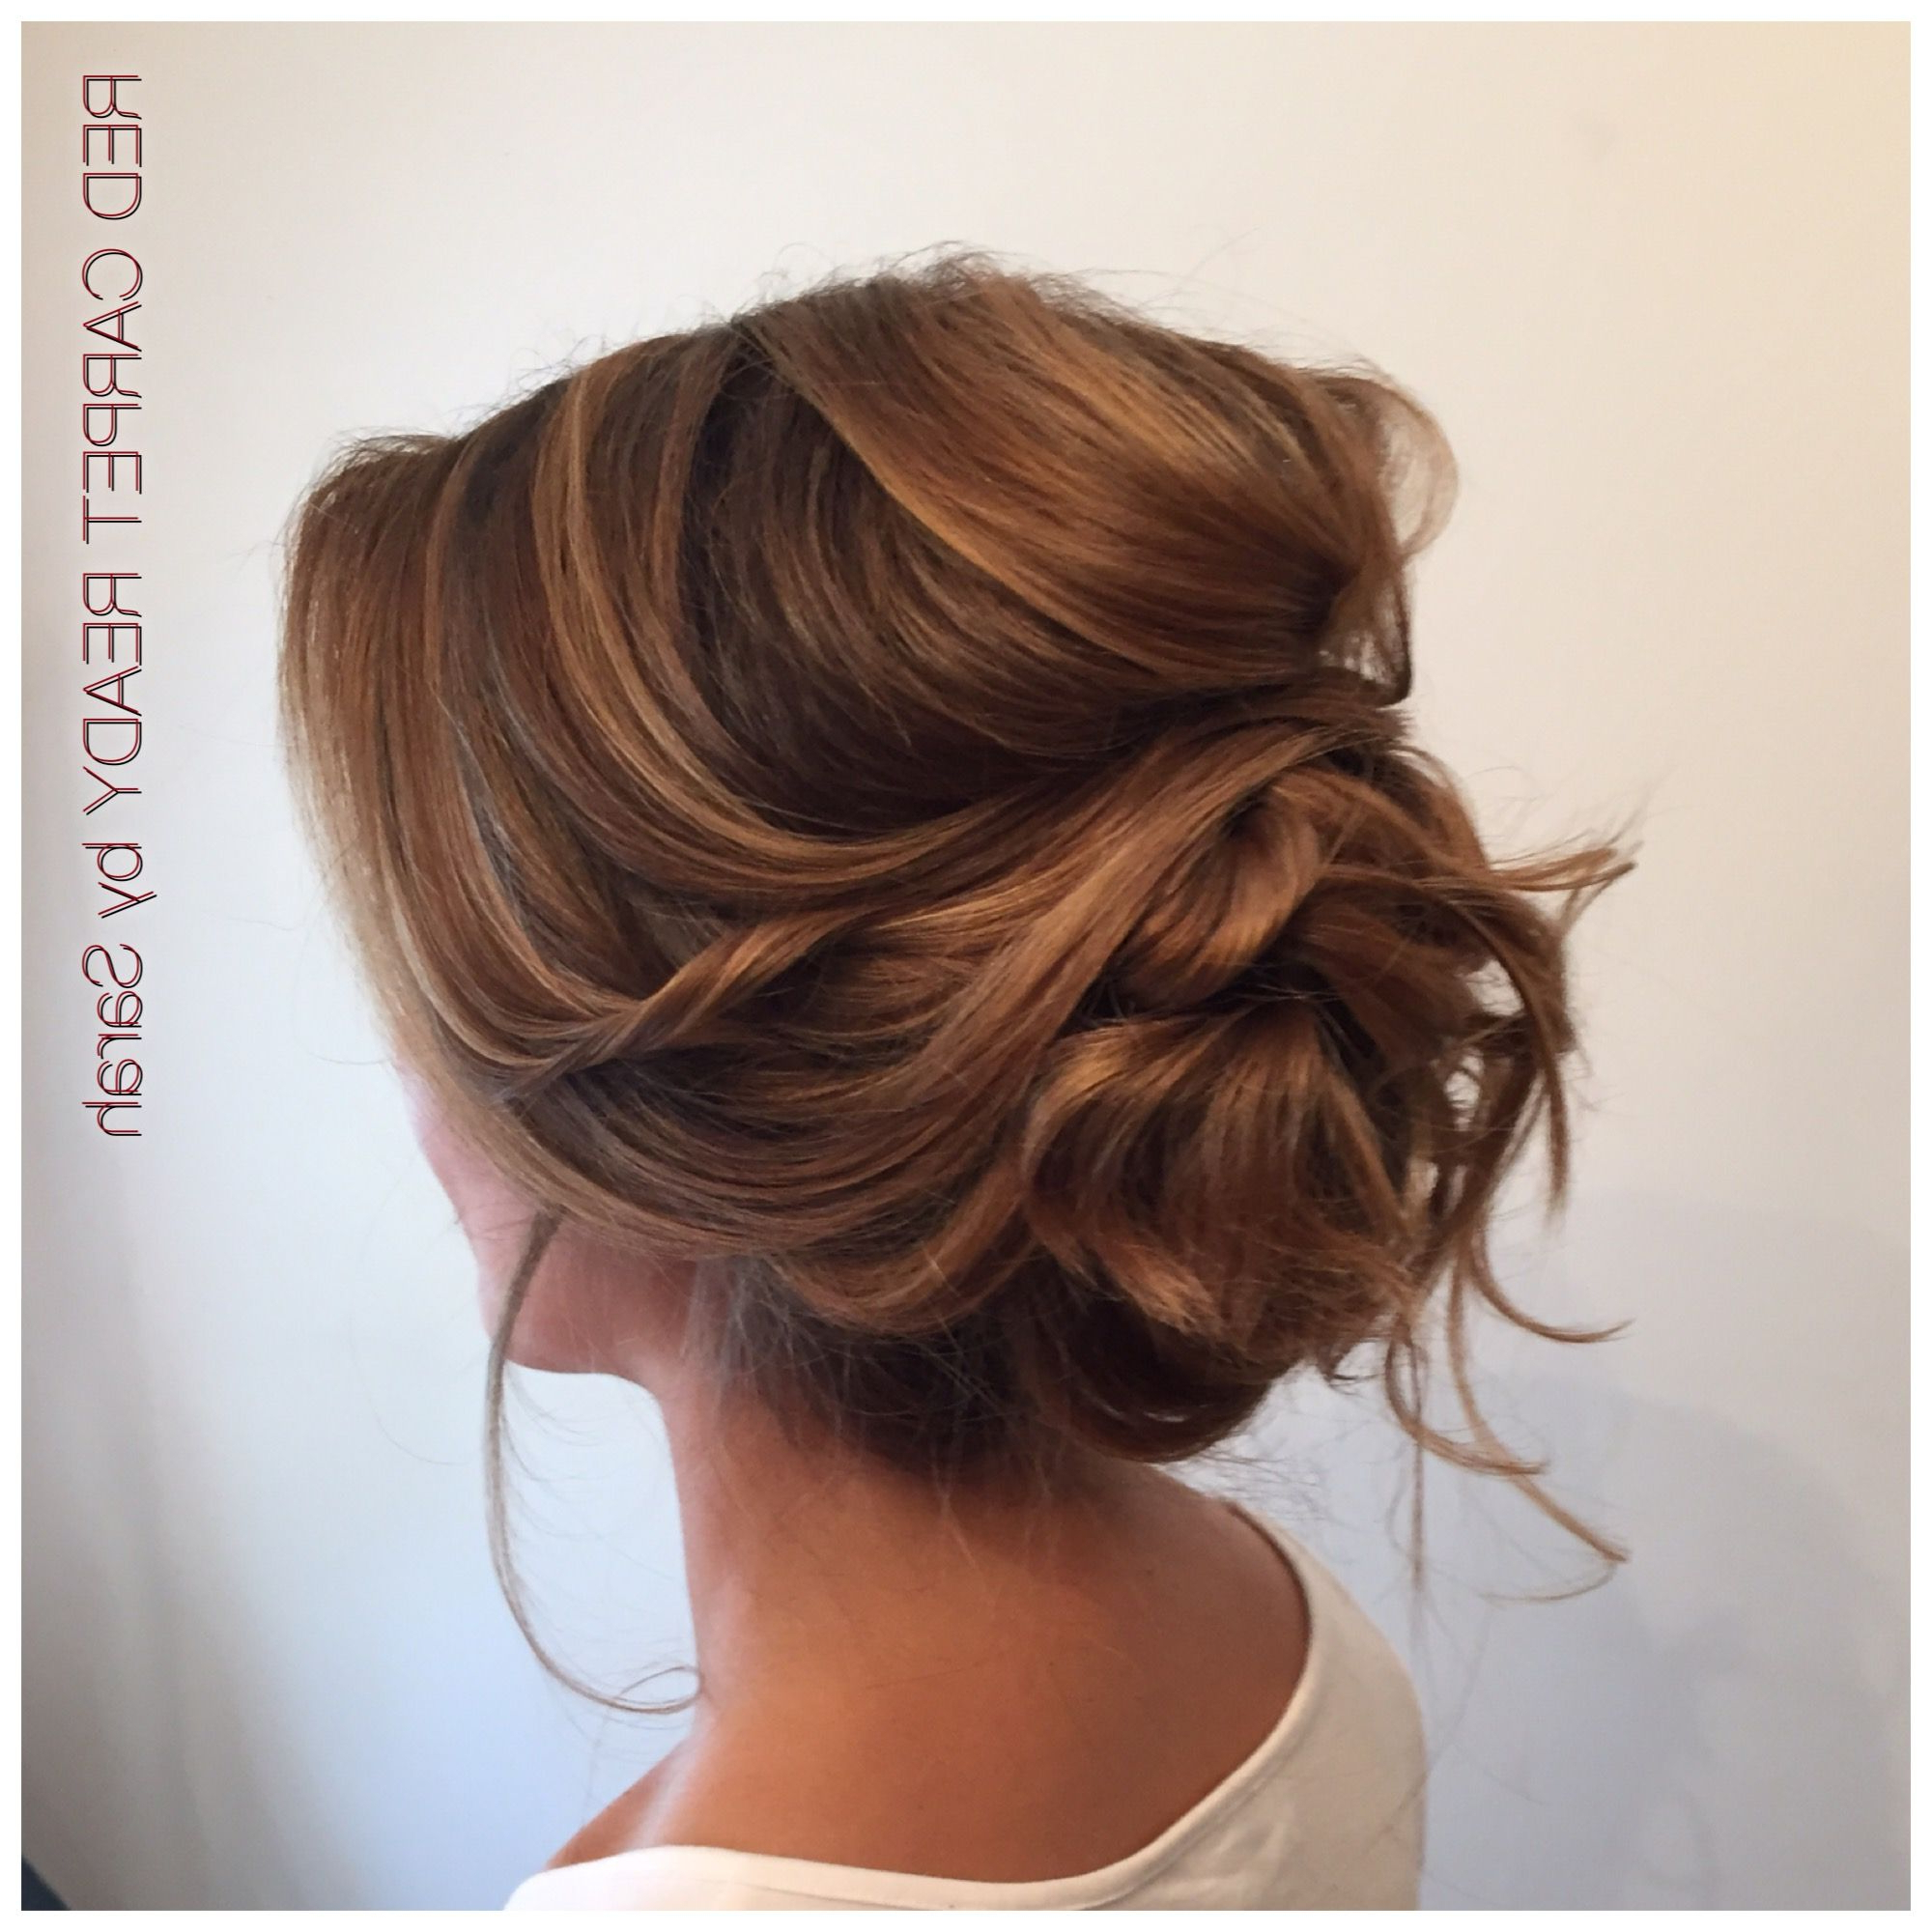 Hairstyles : Low Bun Prom Hairstyles Soft Voluminous Updo Hairme With Regard To Preferred Low Petal Like Bun Prom Hairstyles (Gallery 17 of 20)